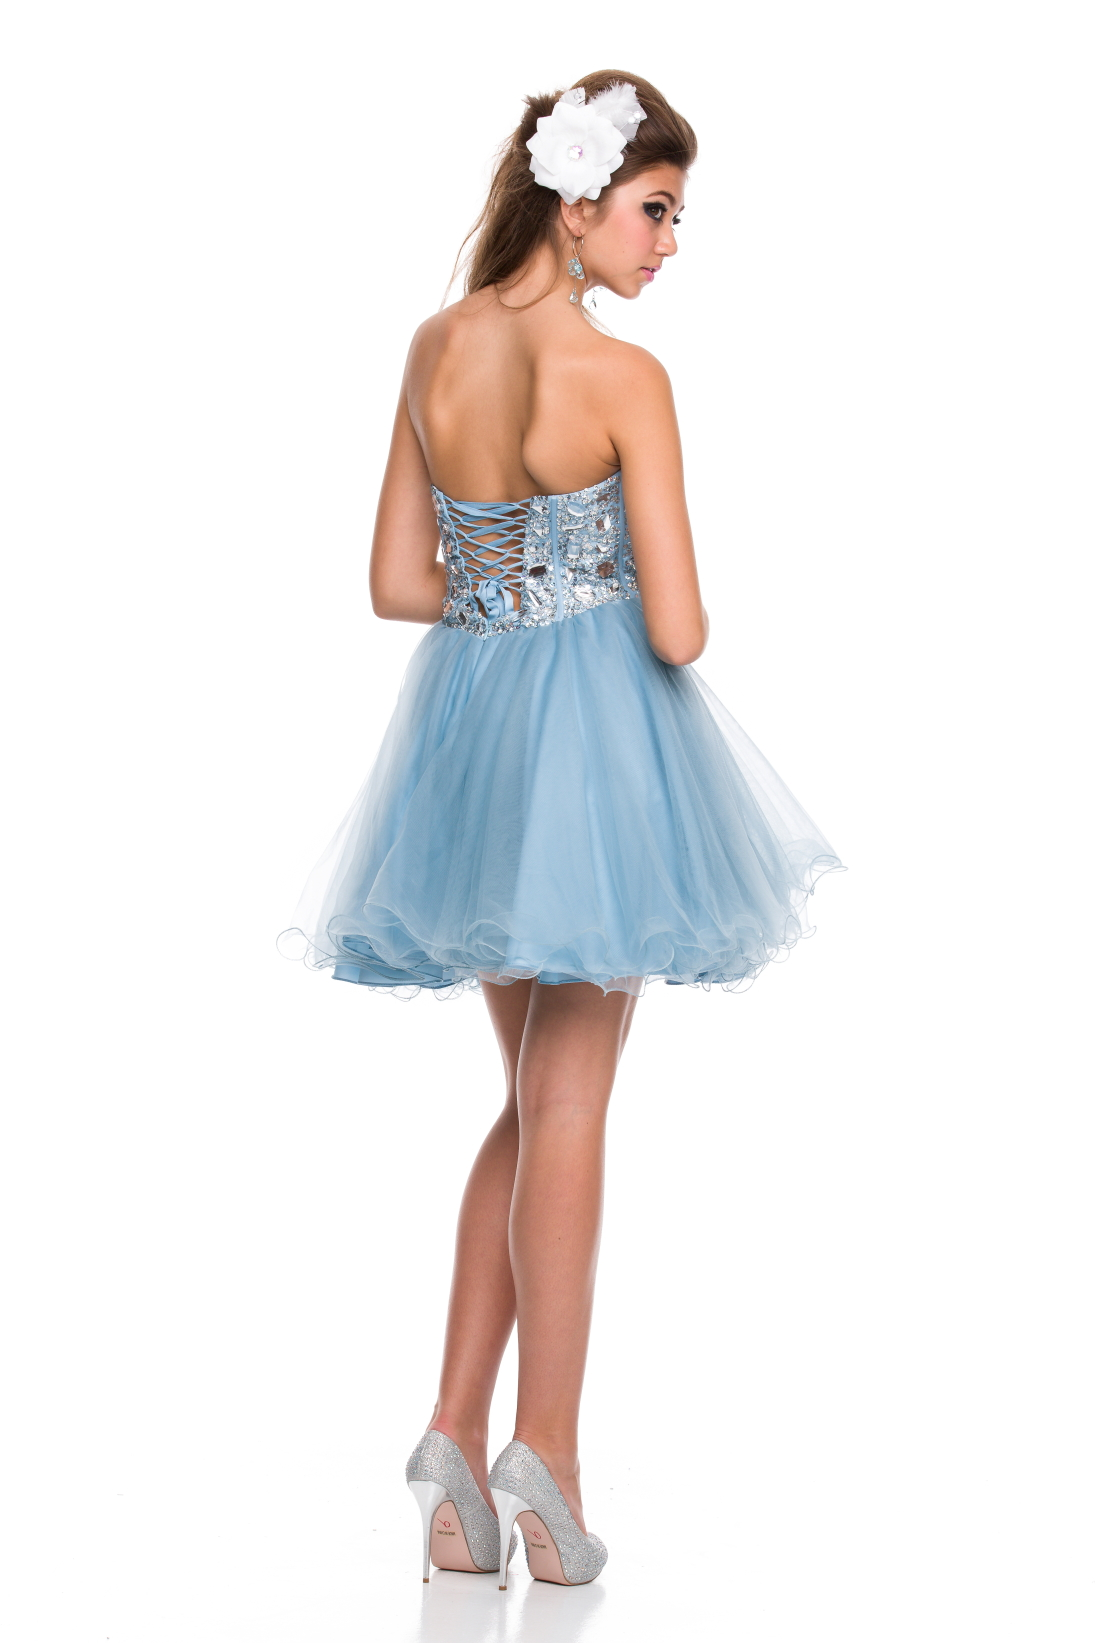 hot corset chiffon tutu skirt sweet 16 birthday prom